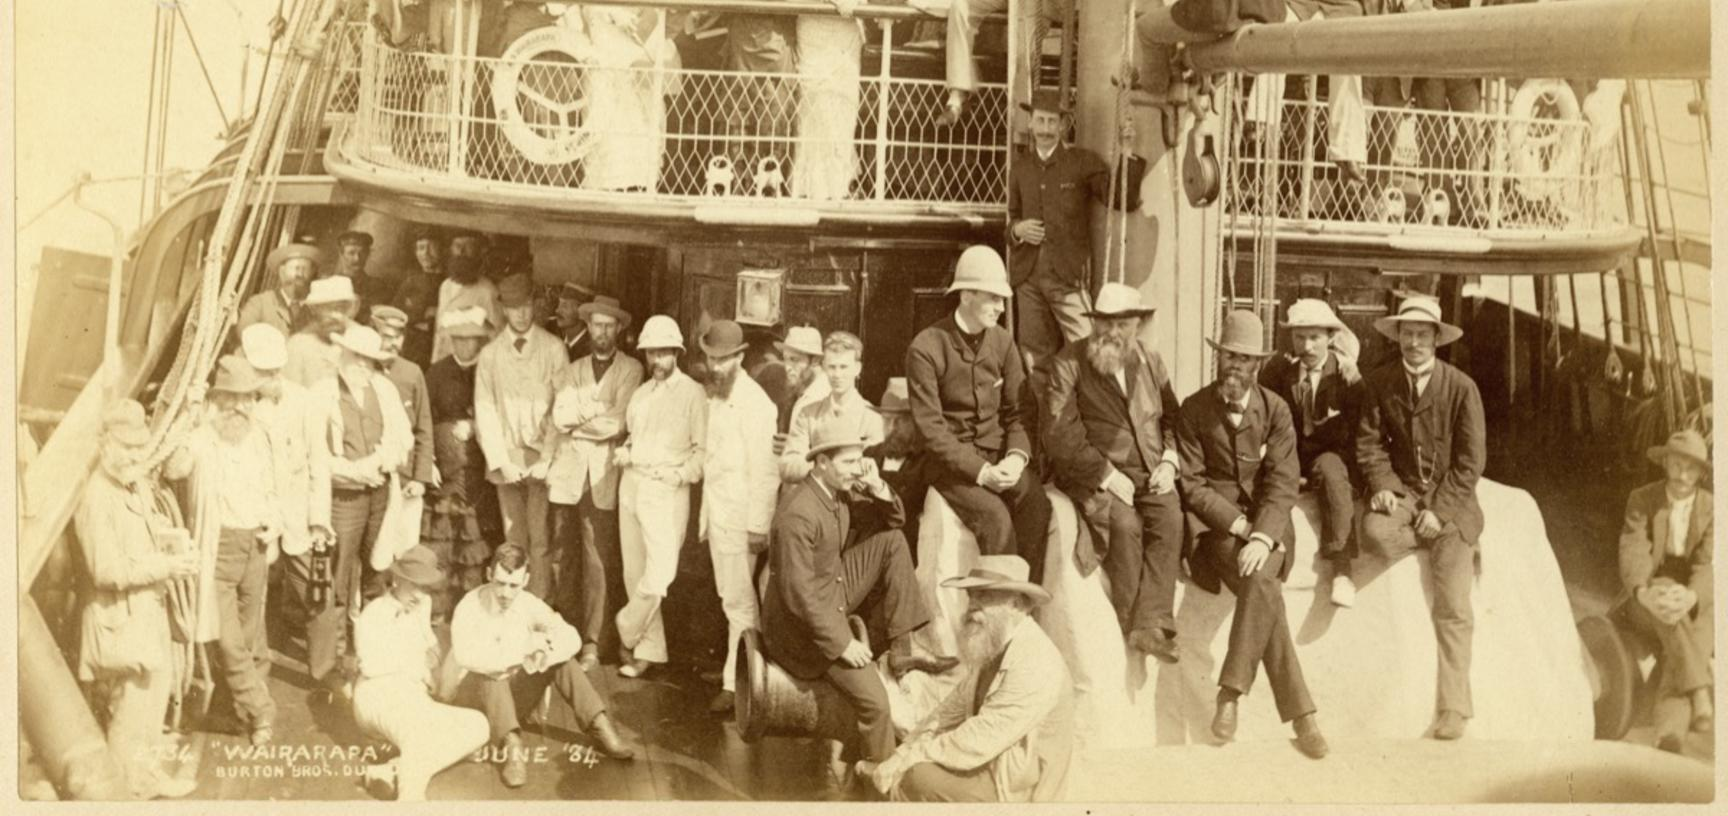 Passengers on board the deck of the S.S. Wairarapa, the Union Line steamship which in June and July 1884 made two voyages to the South Seas. Photograph by Alfred Burton for the Burton Brothers studio (Dunedin). June 1884.